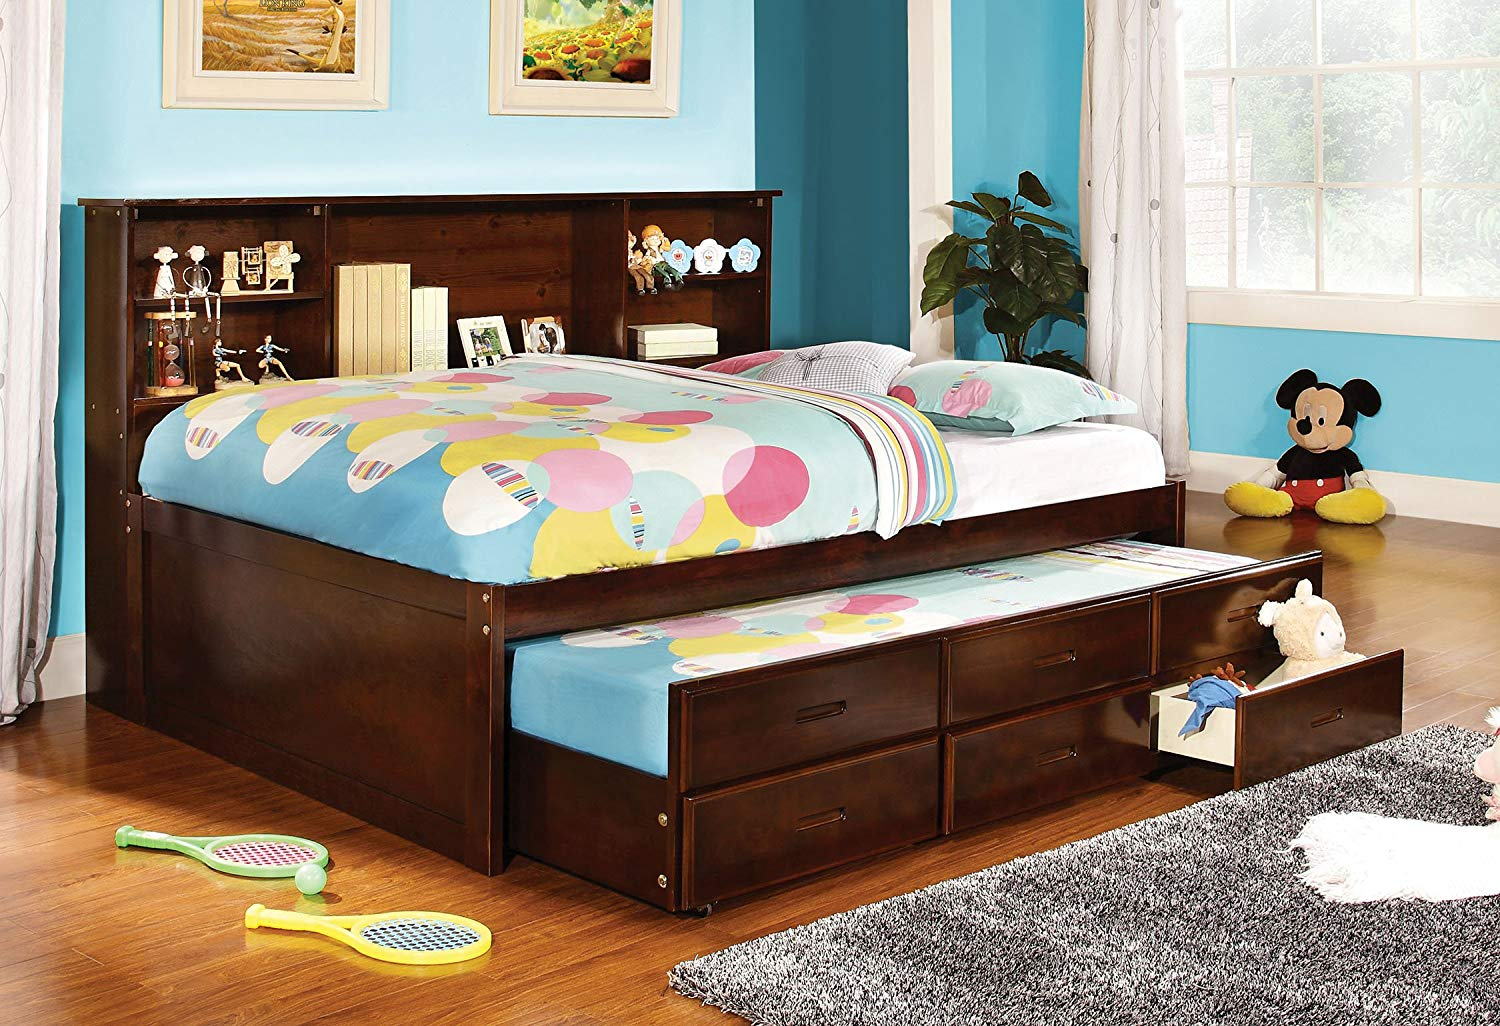 Picture of: Girls Twin Bed With Trundle And Storage